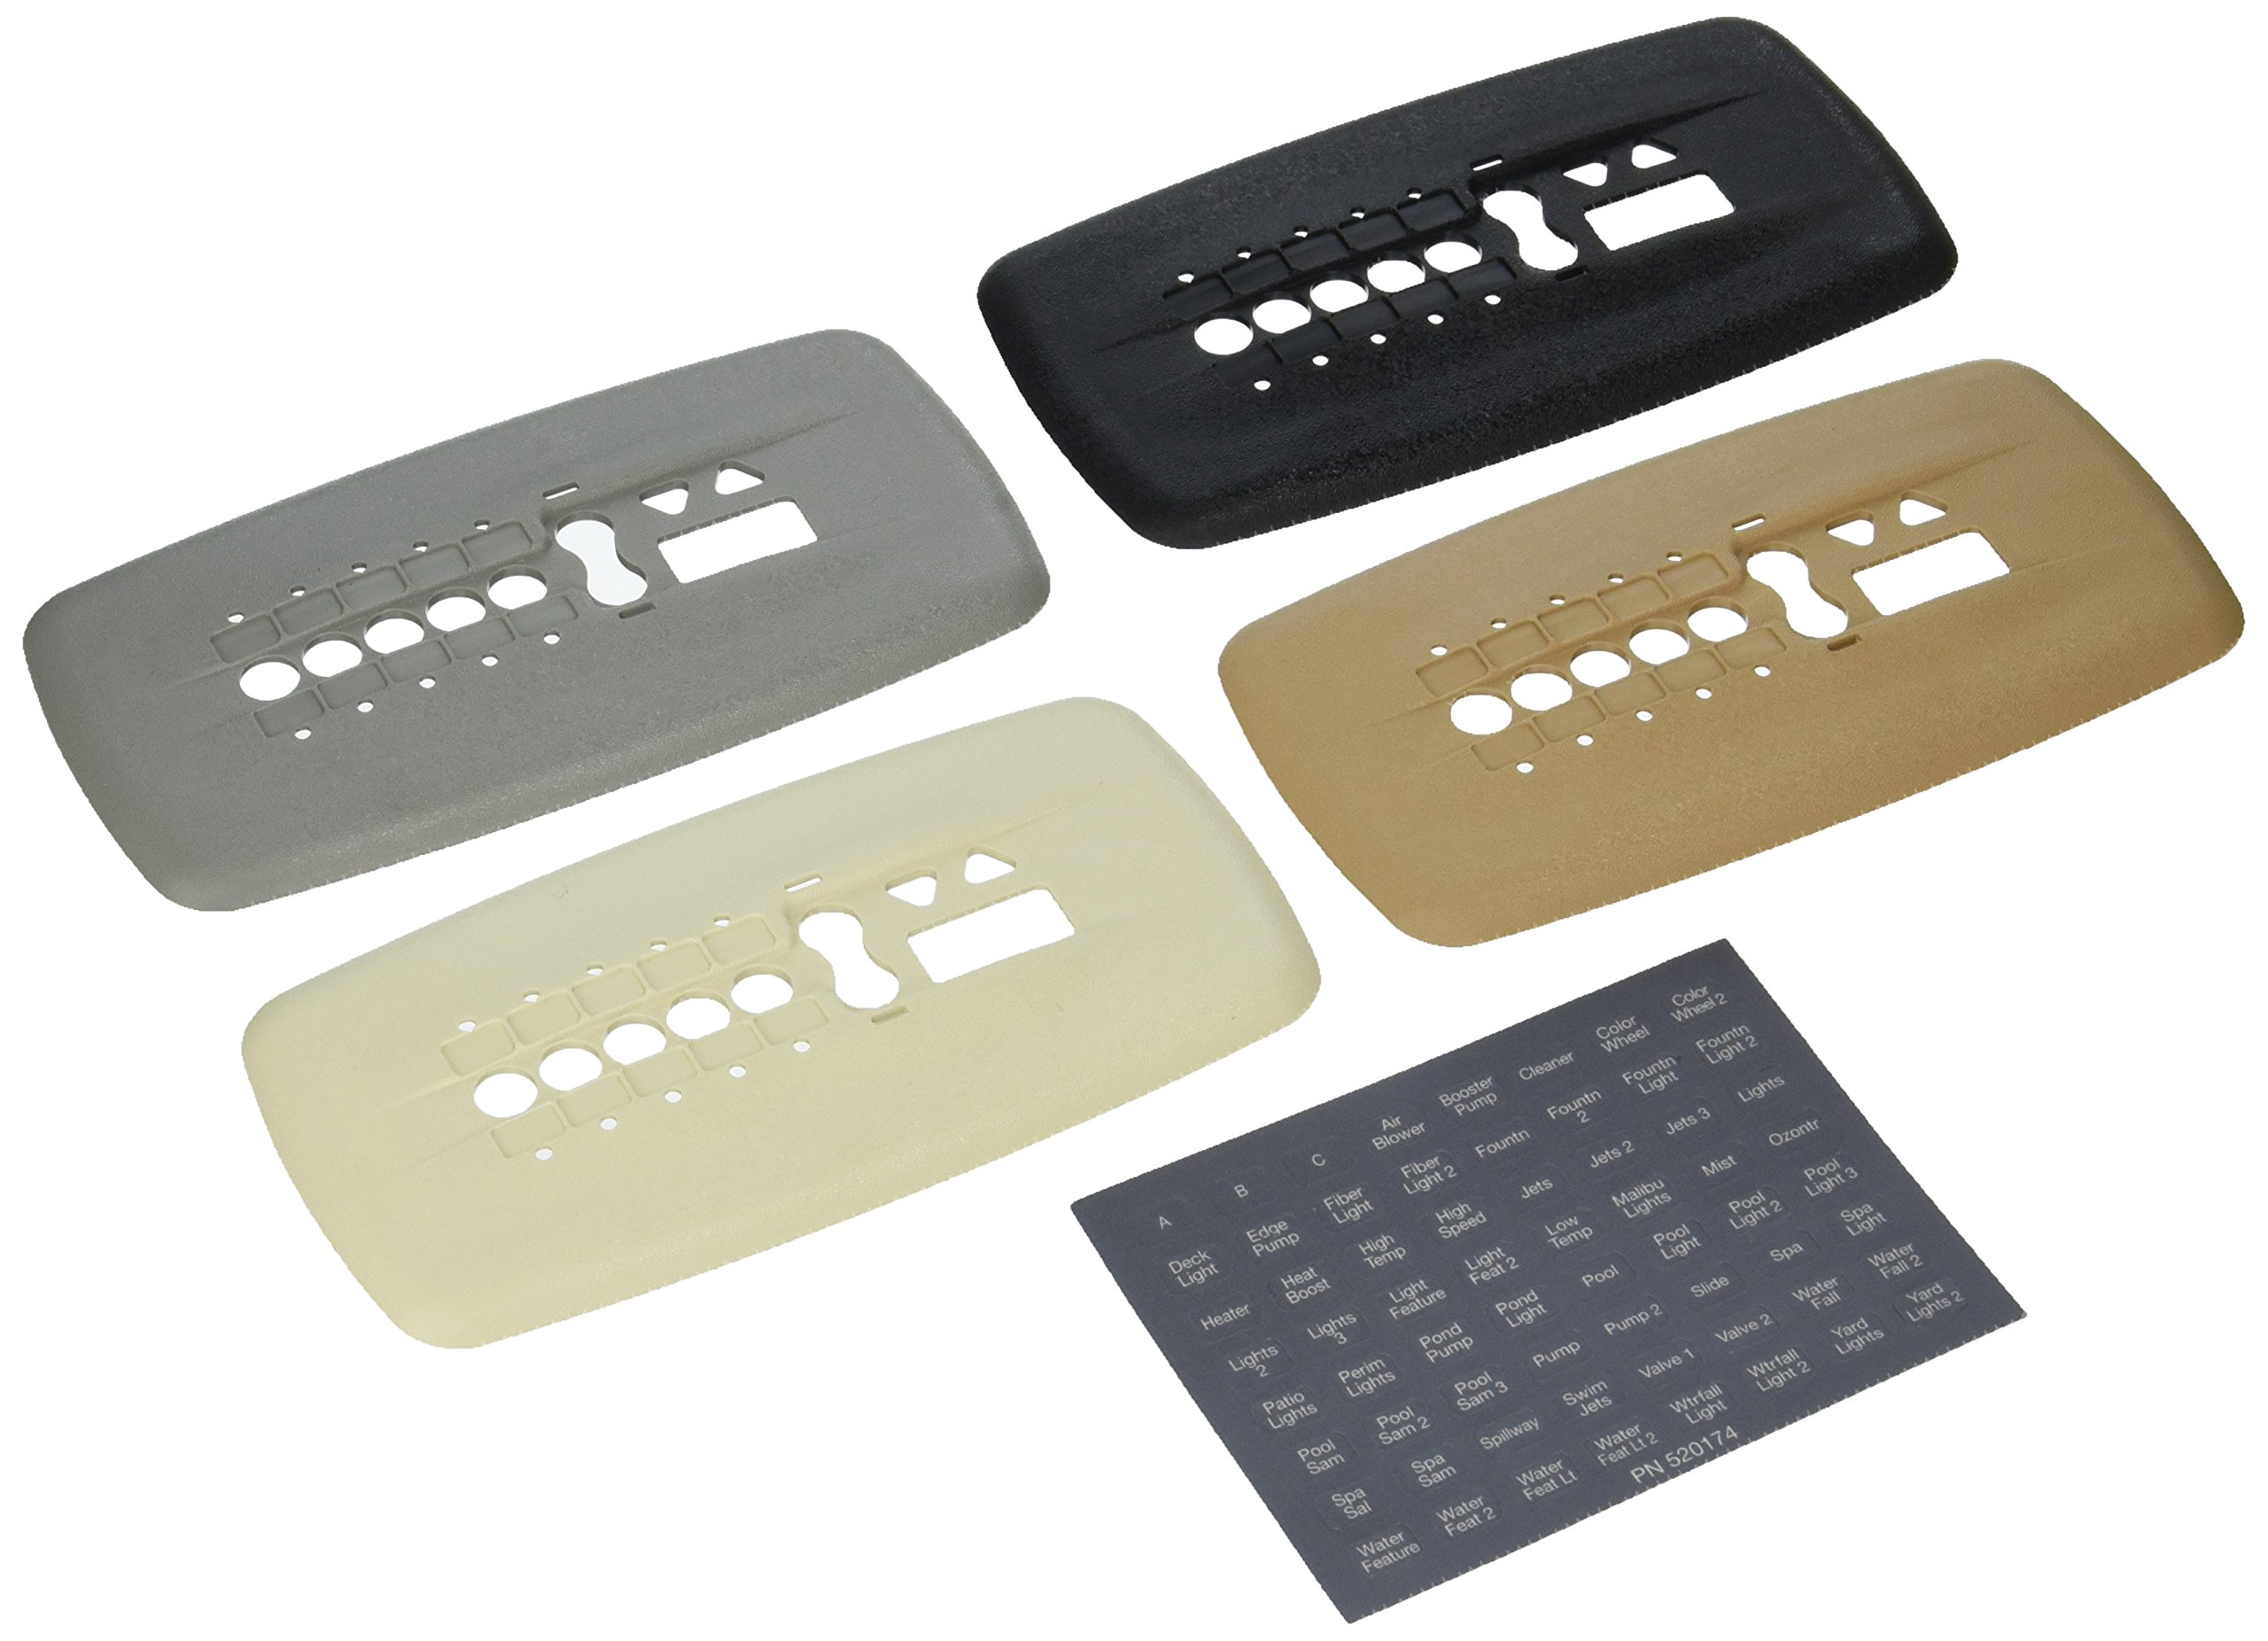 Pentair 520355 IntelliTouch Colored Surface-Mount Faceplate Kit with Label Set